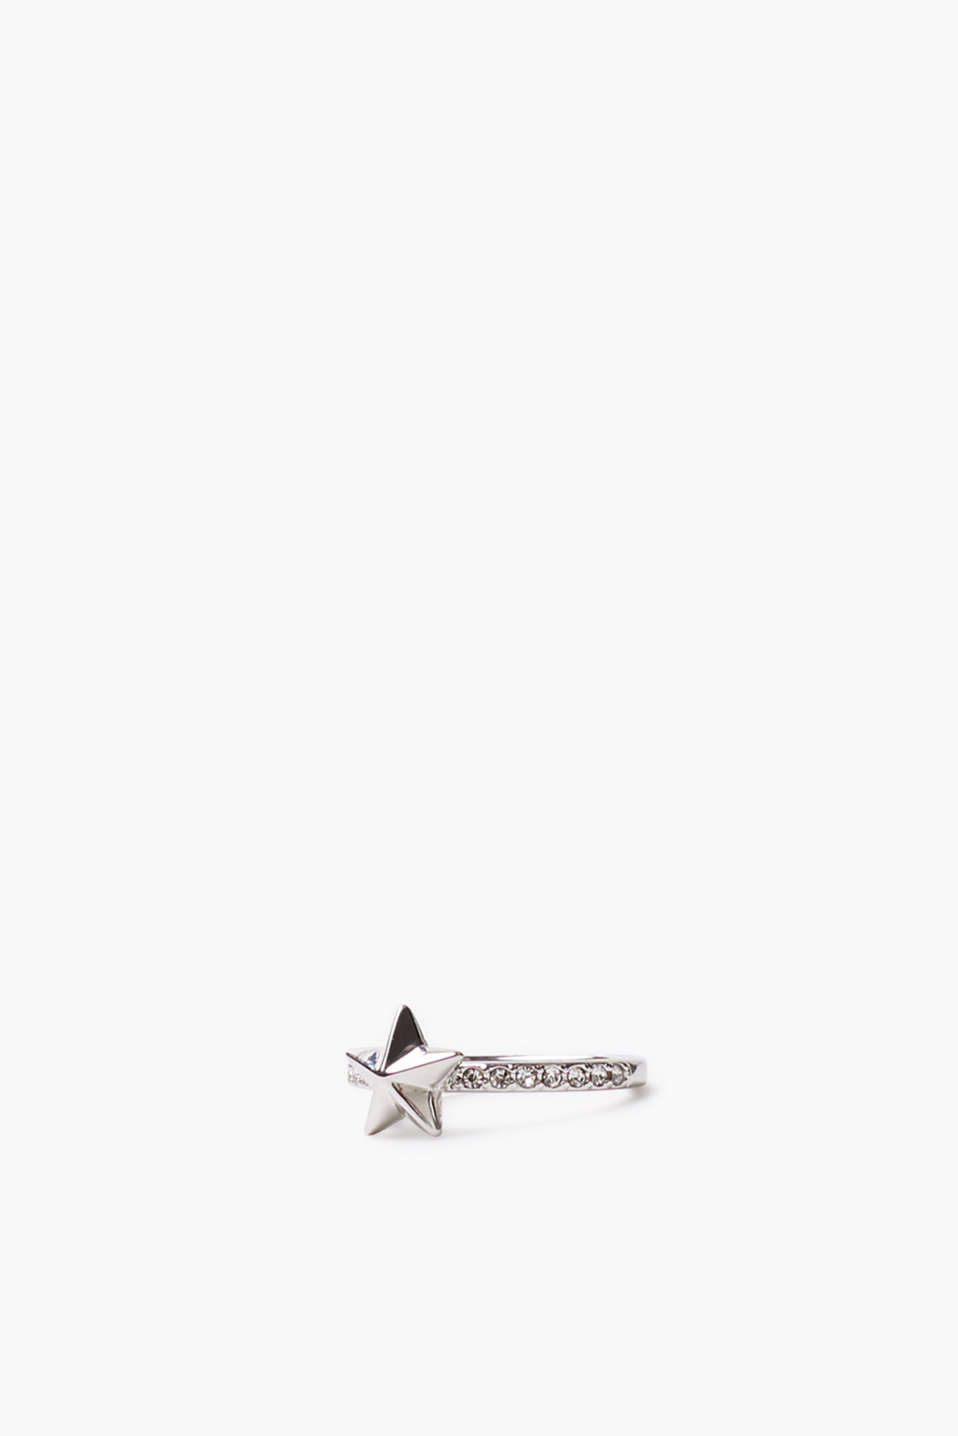 Ring with a star, made of metal and zirconia